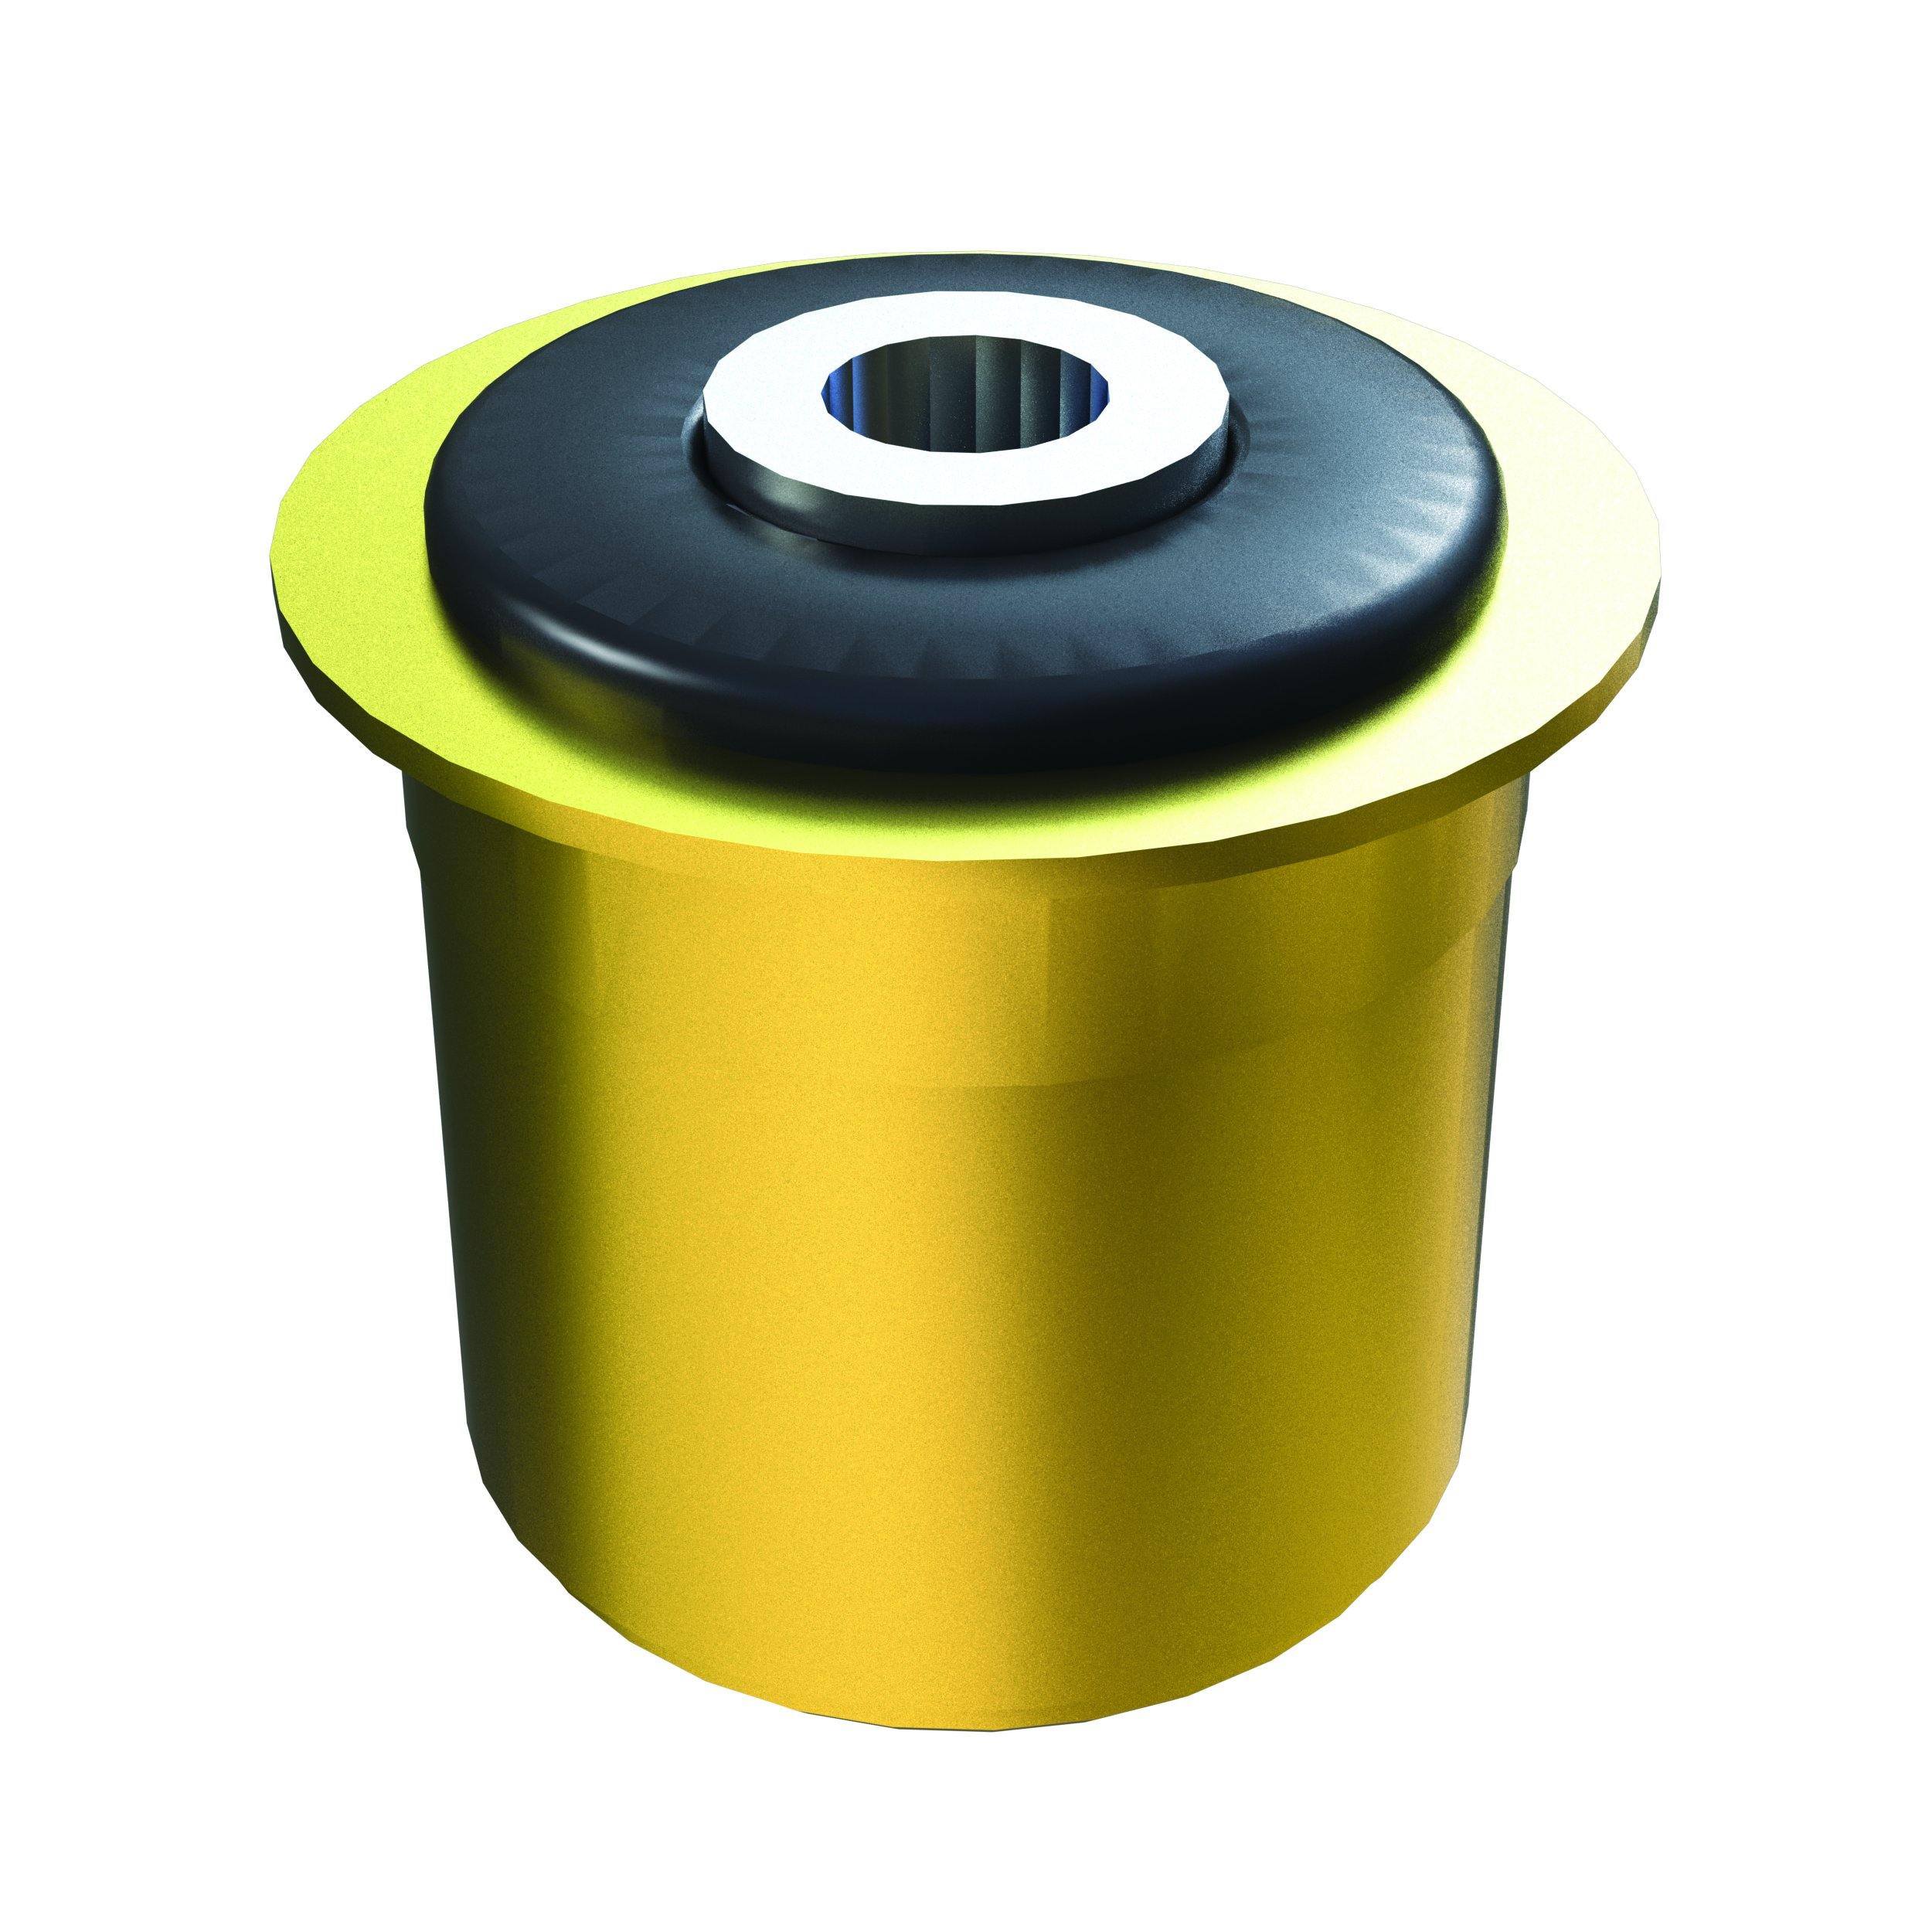 TeraFlex 4915161 Large Clevite Rubber Bushing